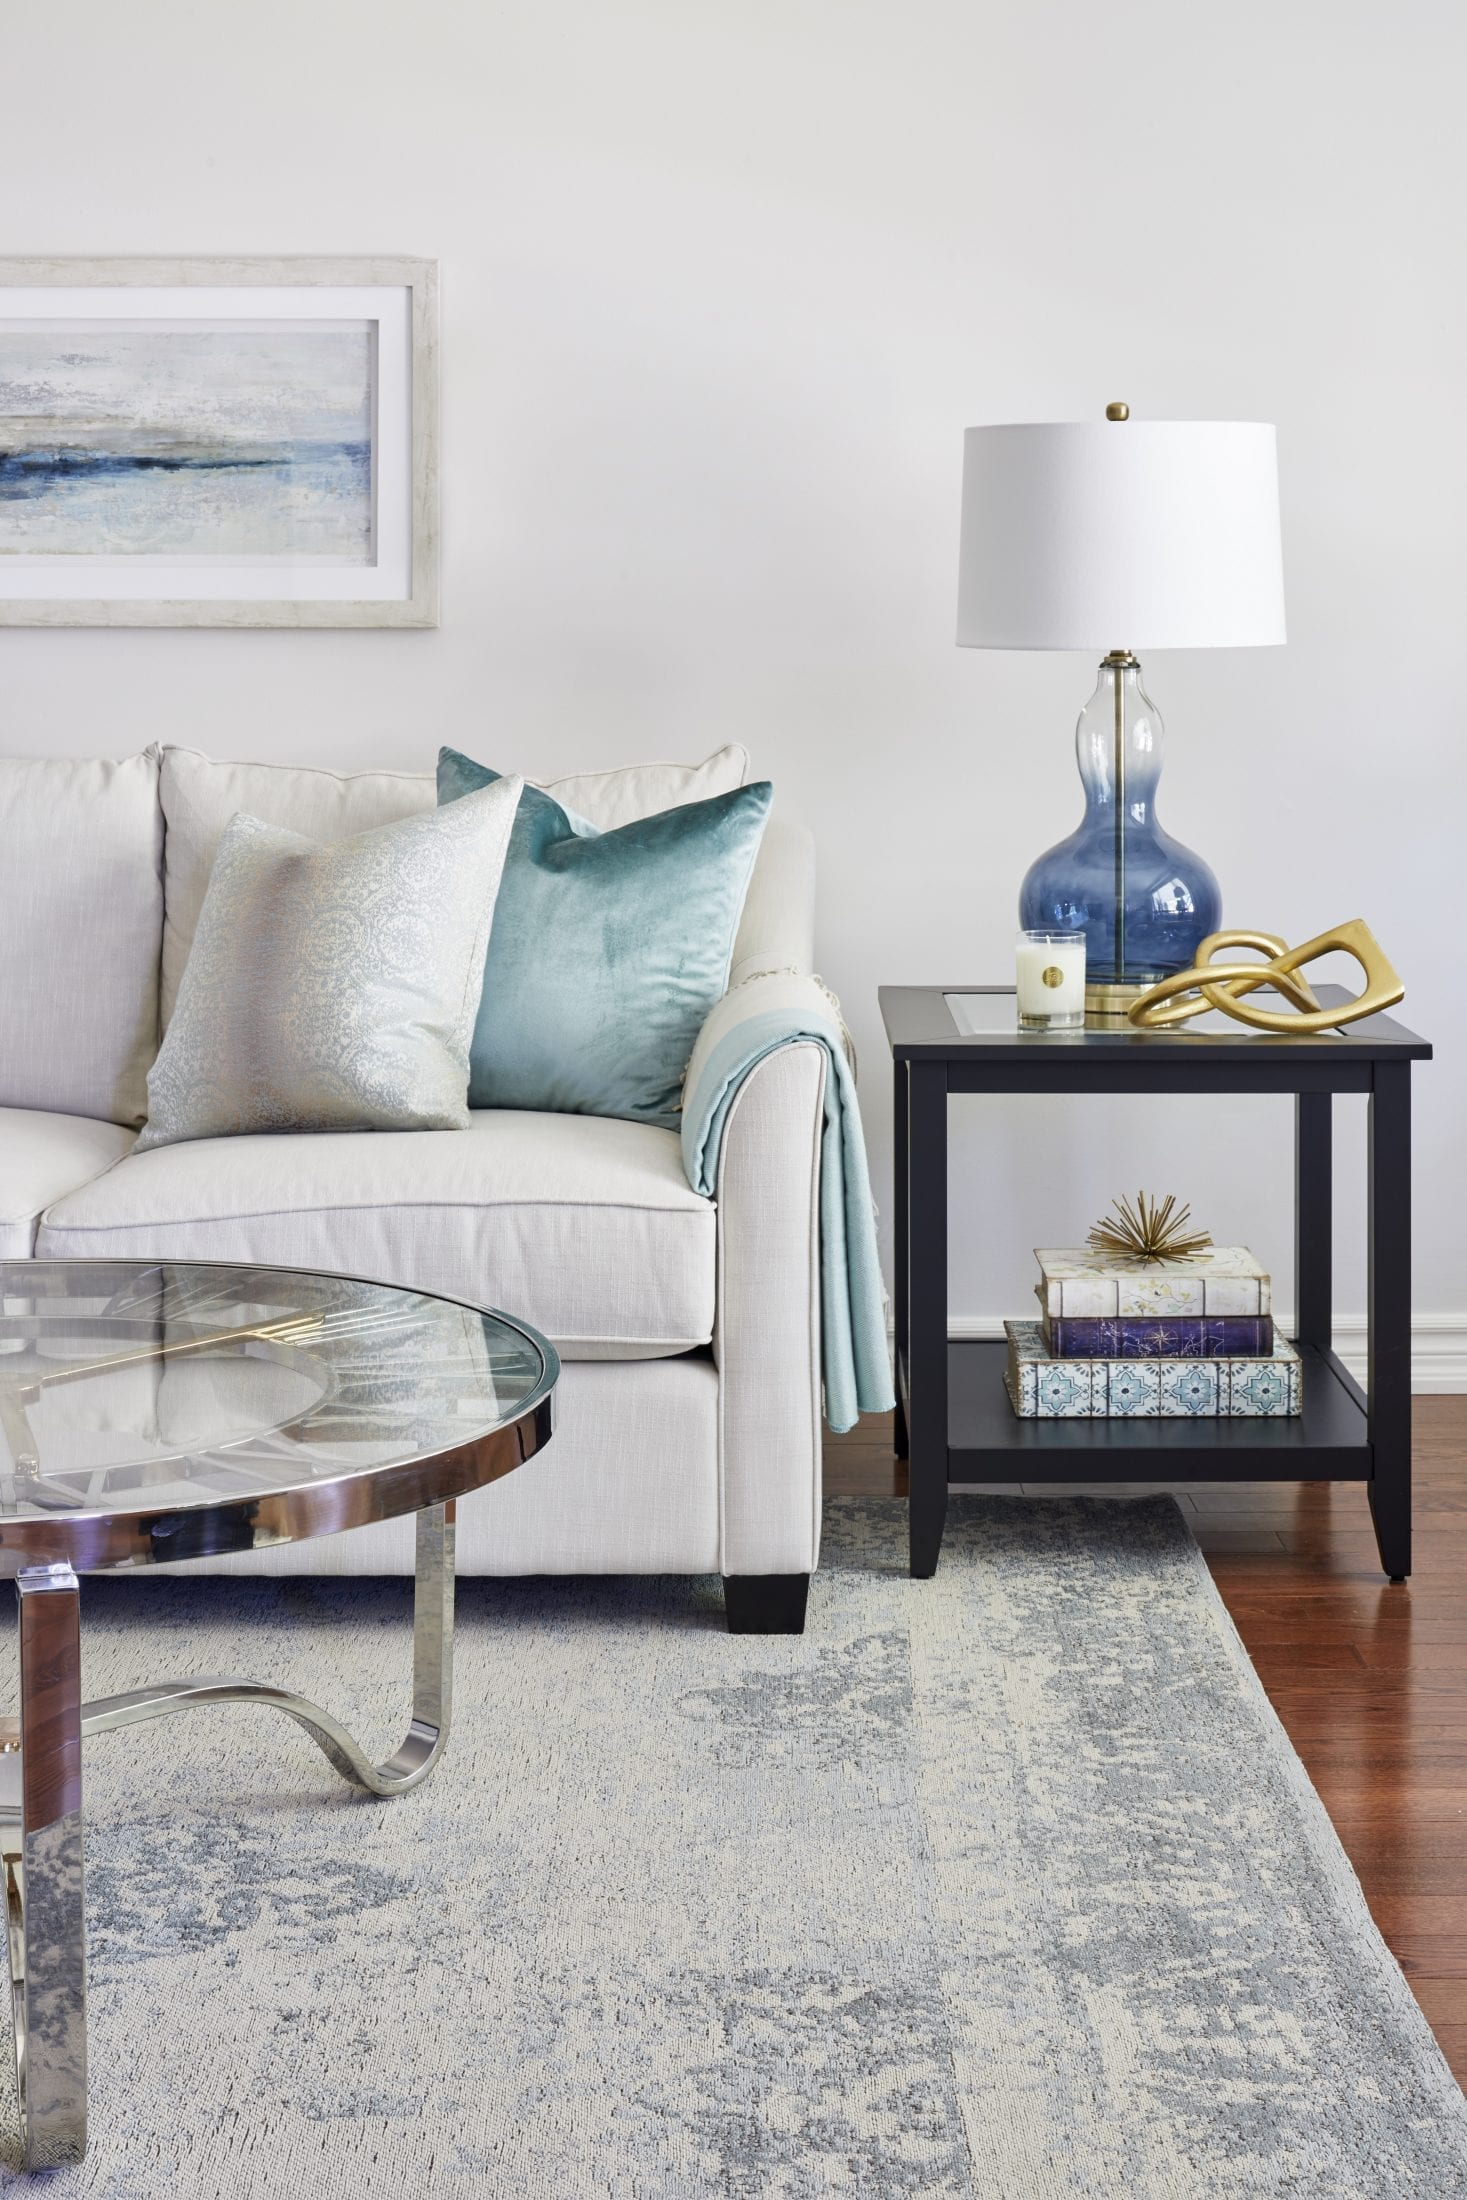 Interior Styling ideas crate & barrel vase blue and gold artwork